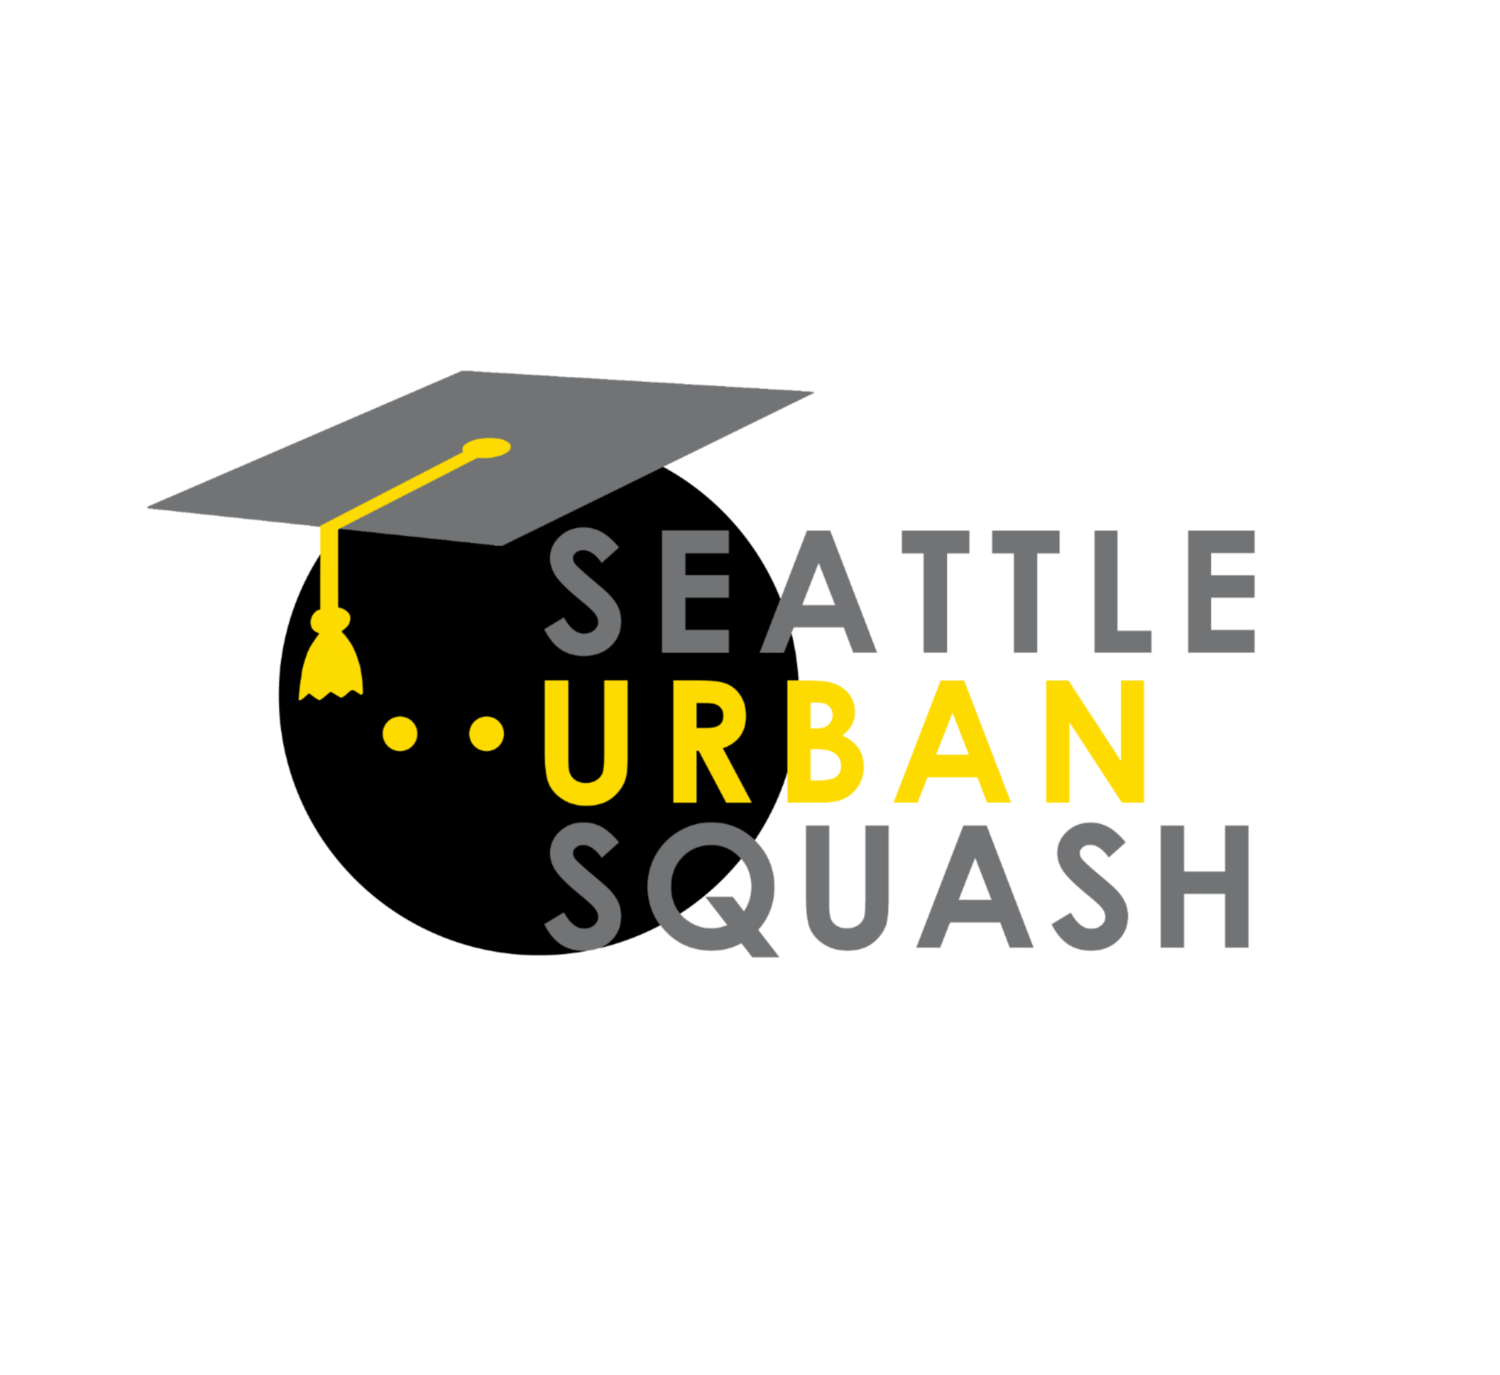 Seattle Urban Squash